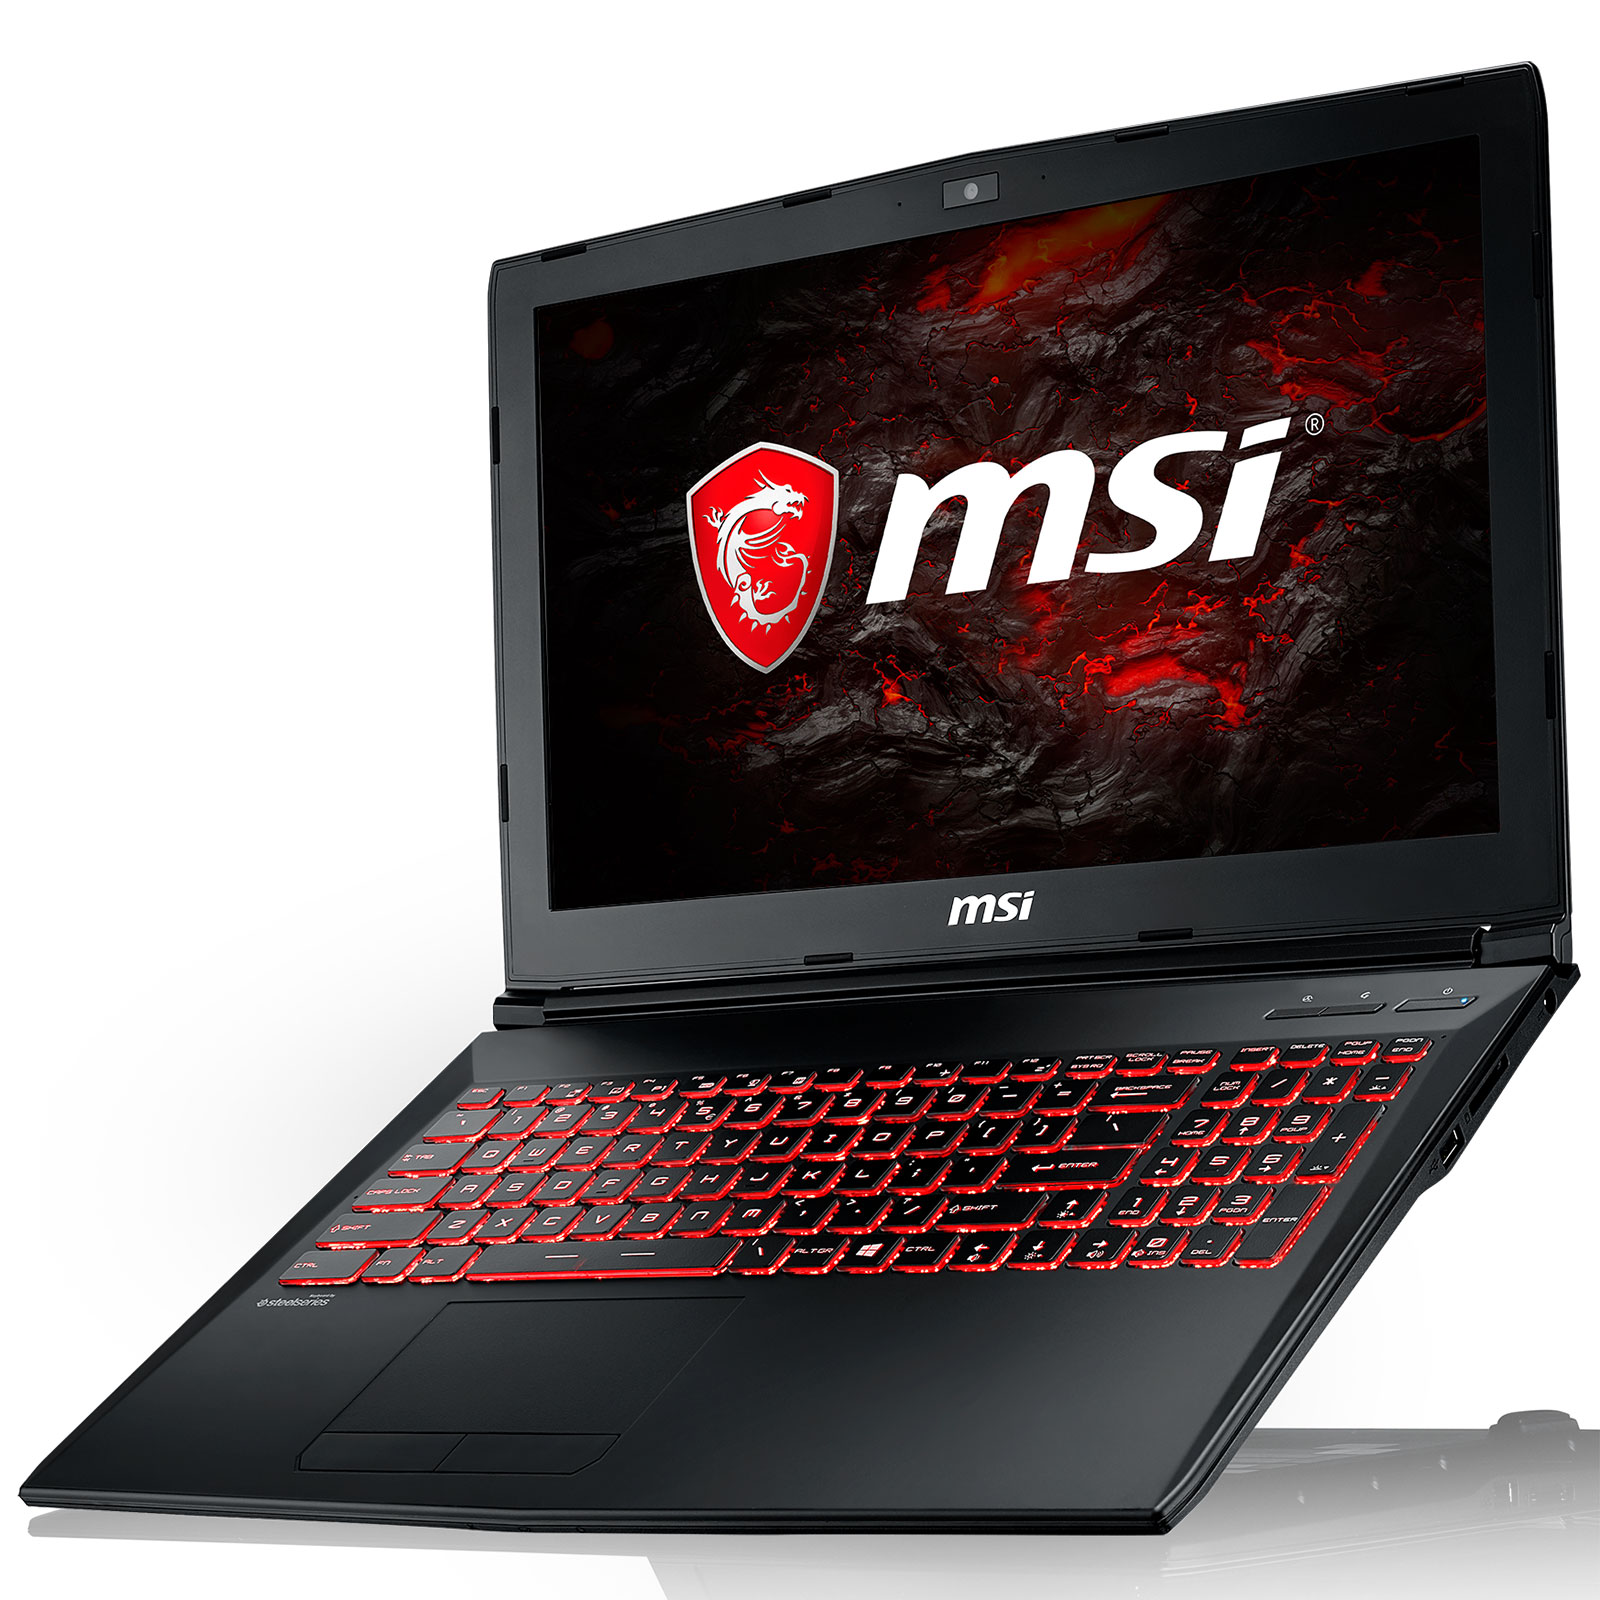 "PC portable MSI GL62M 7RDX-2613XFR Intel Core i5-7300HQ 8 Go 1 To 15.6"" LED Full HD NVIDIA GeForce GTX 1050 2 Go Wi-Fi AC/Bluetooth Webcam FreeDOS (garantie constructeur 2 ans)"